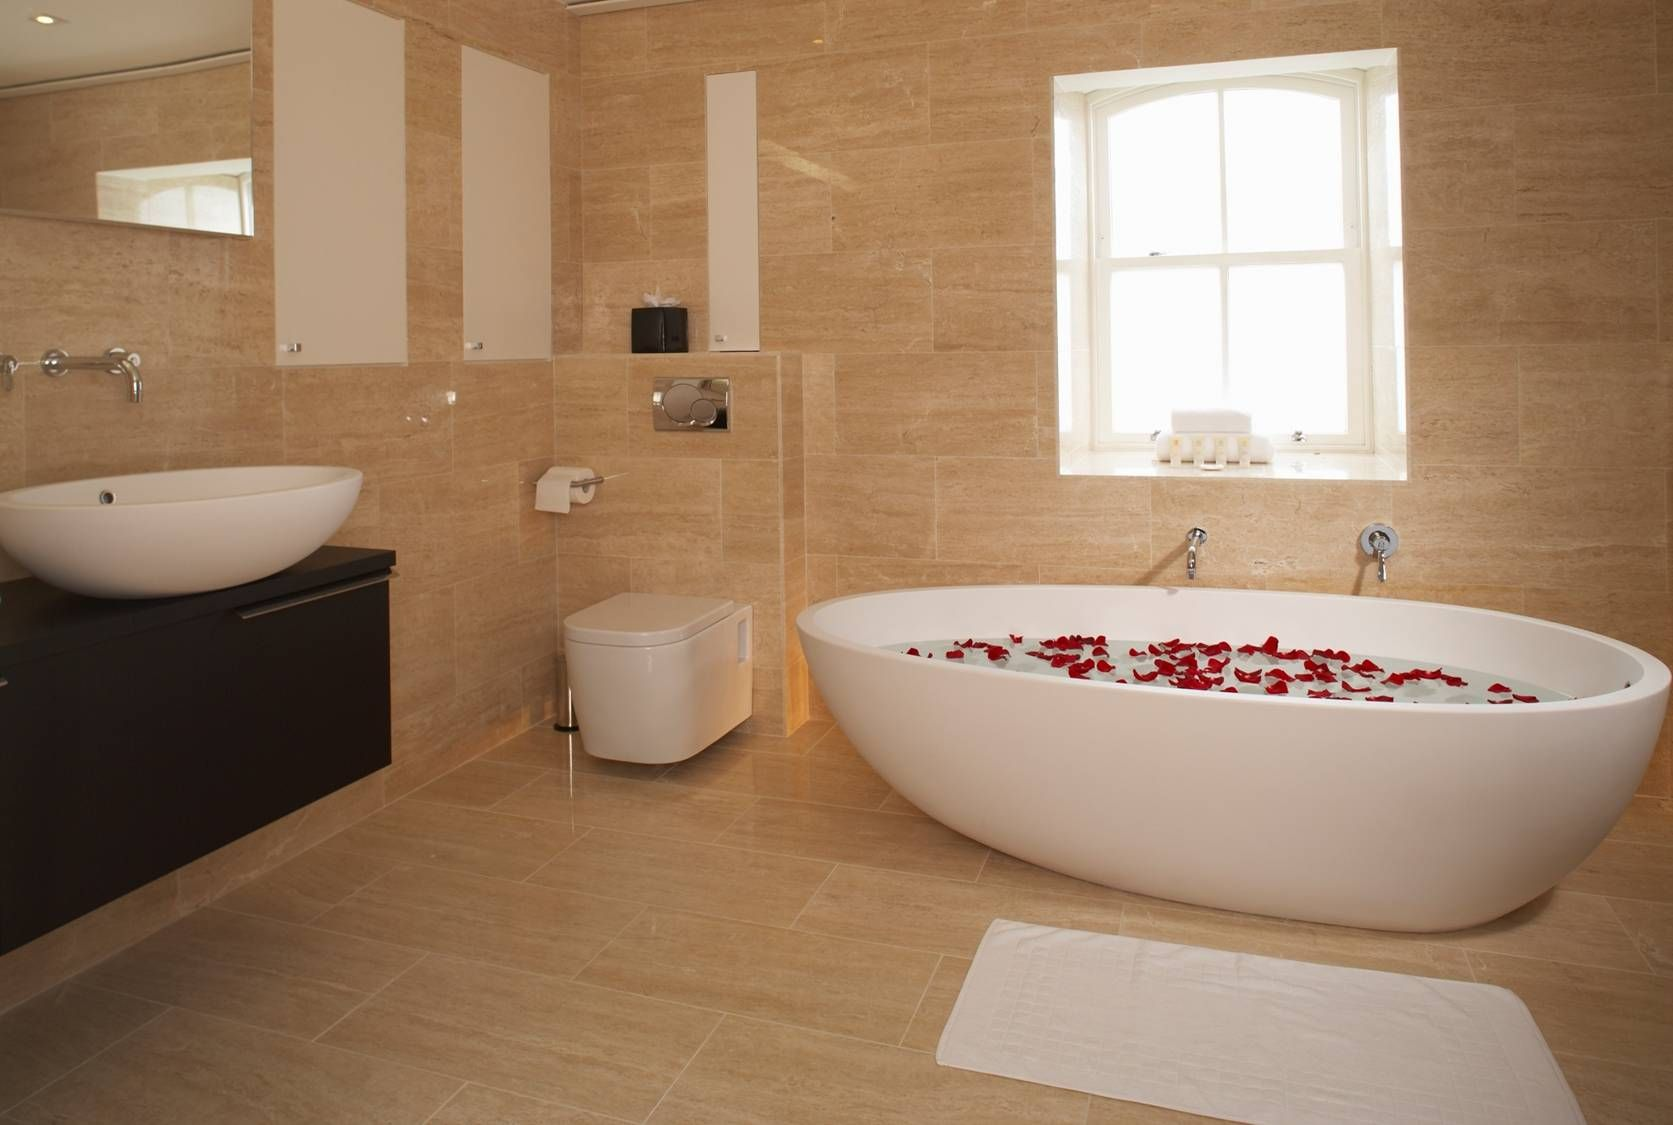 Hotel Bathroom Ideas Part - 48: Hotel Bathroom Photos Bathroom Contemporary Look Hempel Hotel St John Hotel  On Bathroom